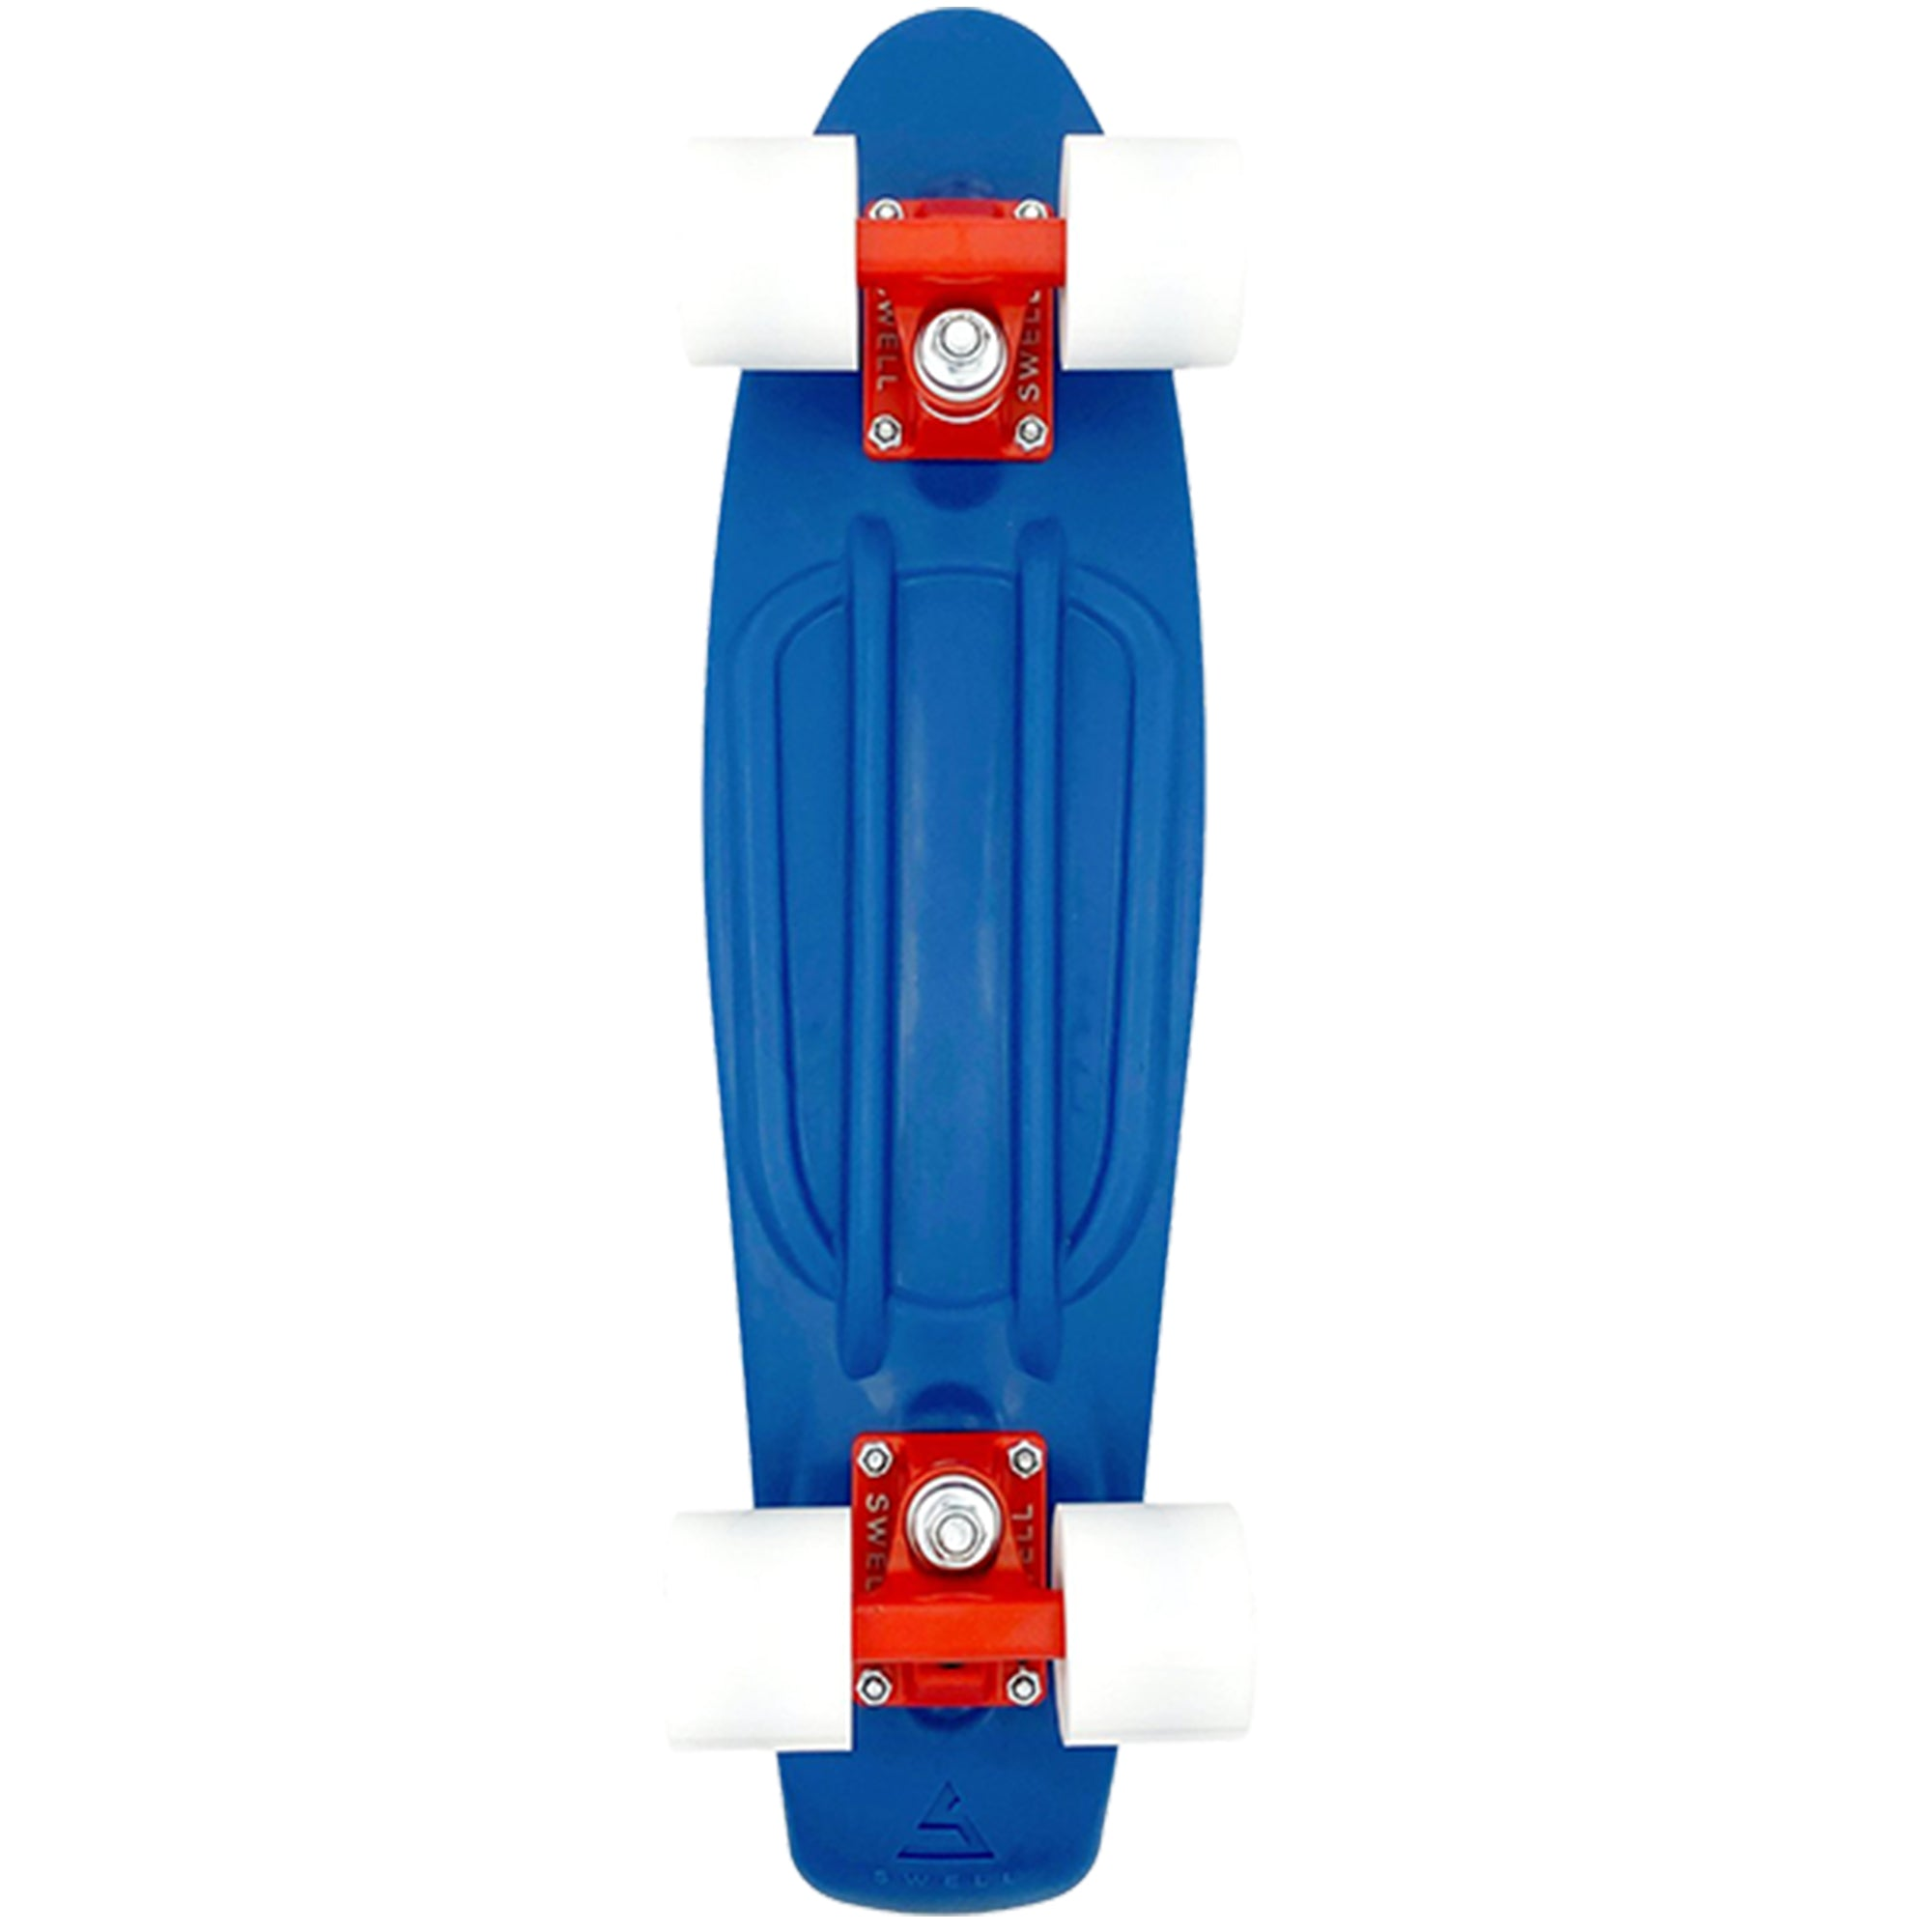 "Swell Ocean 22"" Complete Skateboard - Blue/Red/White"